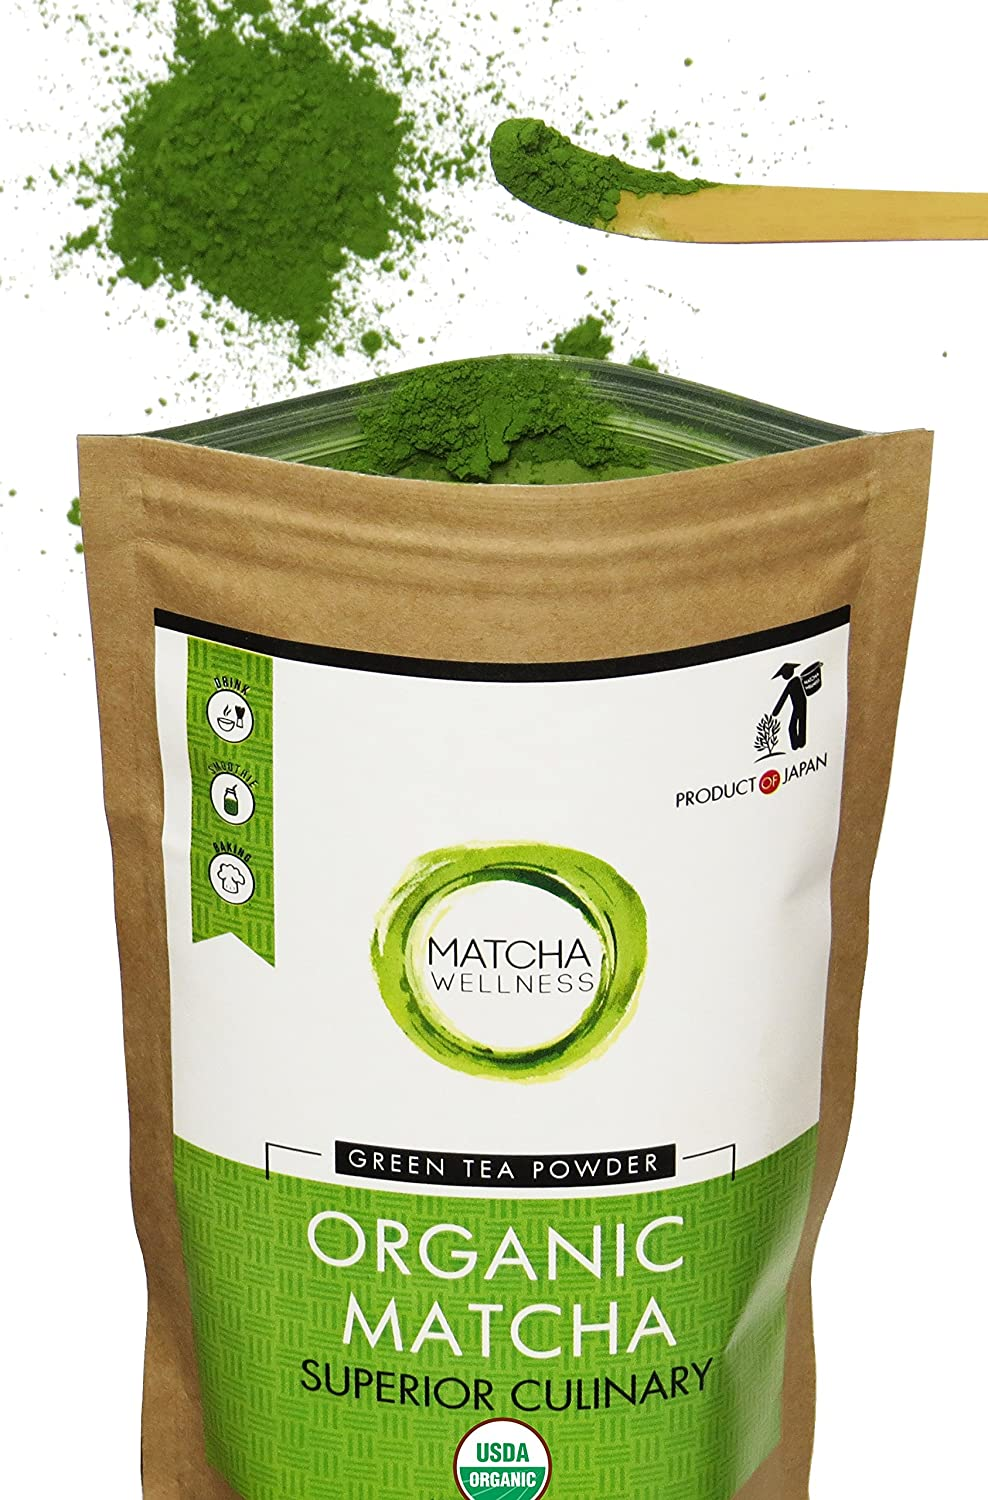 Matcha Wellness Organic Matcha Green Tea Powder